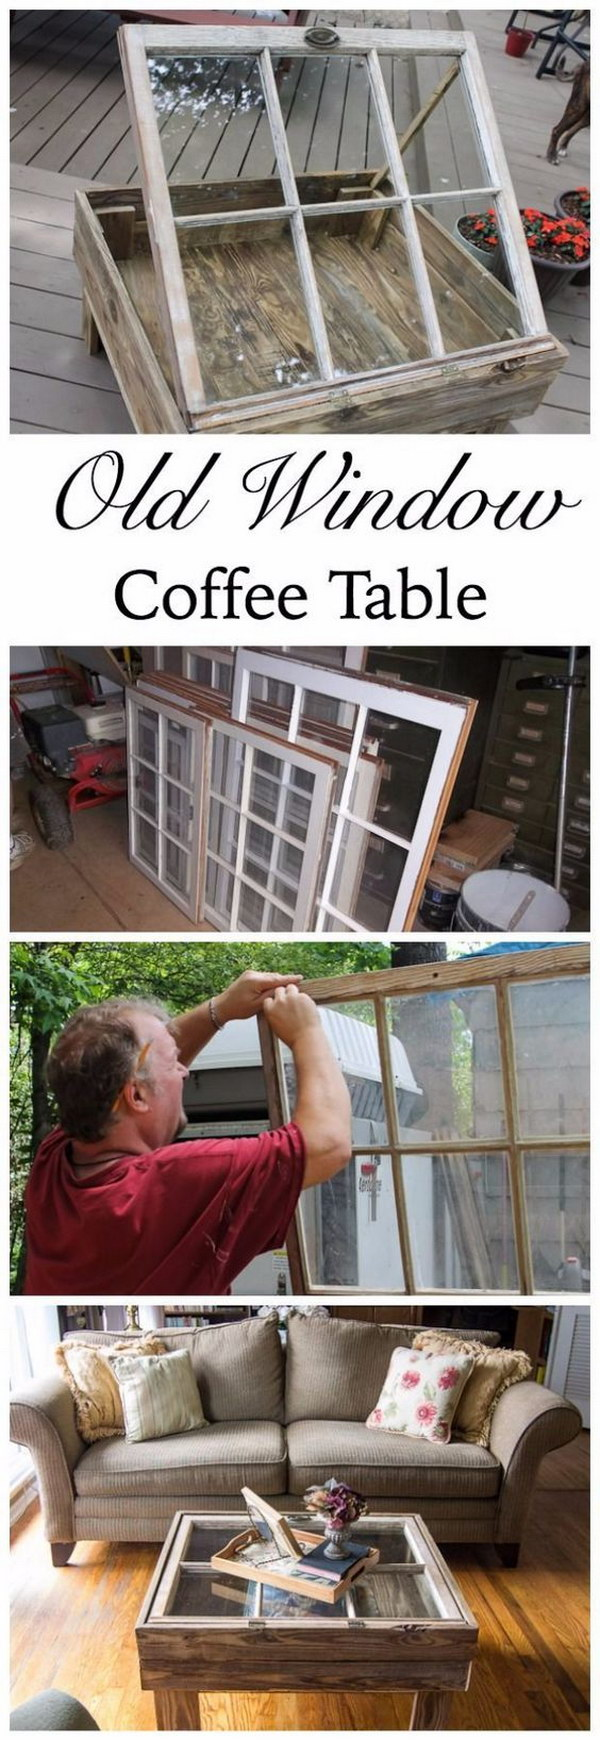 A DIY Coffee Table With Old Window.